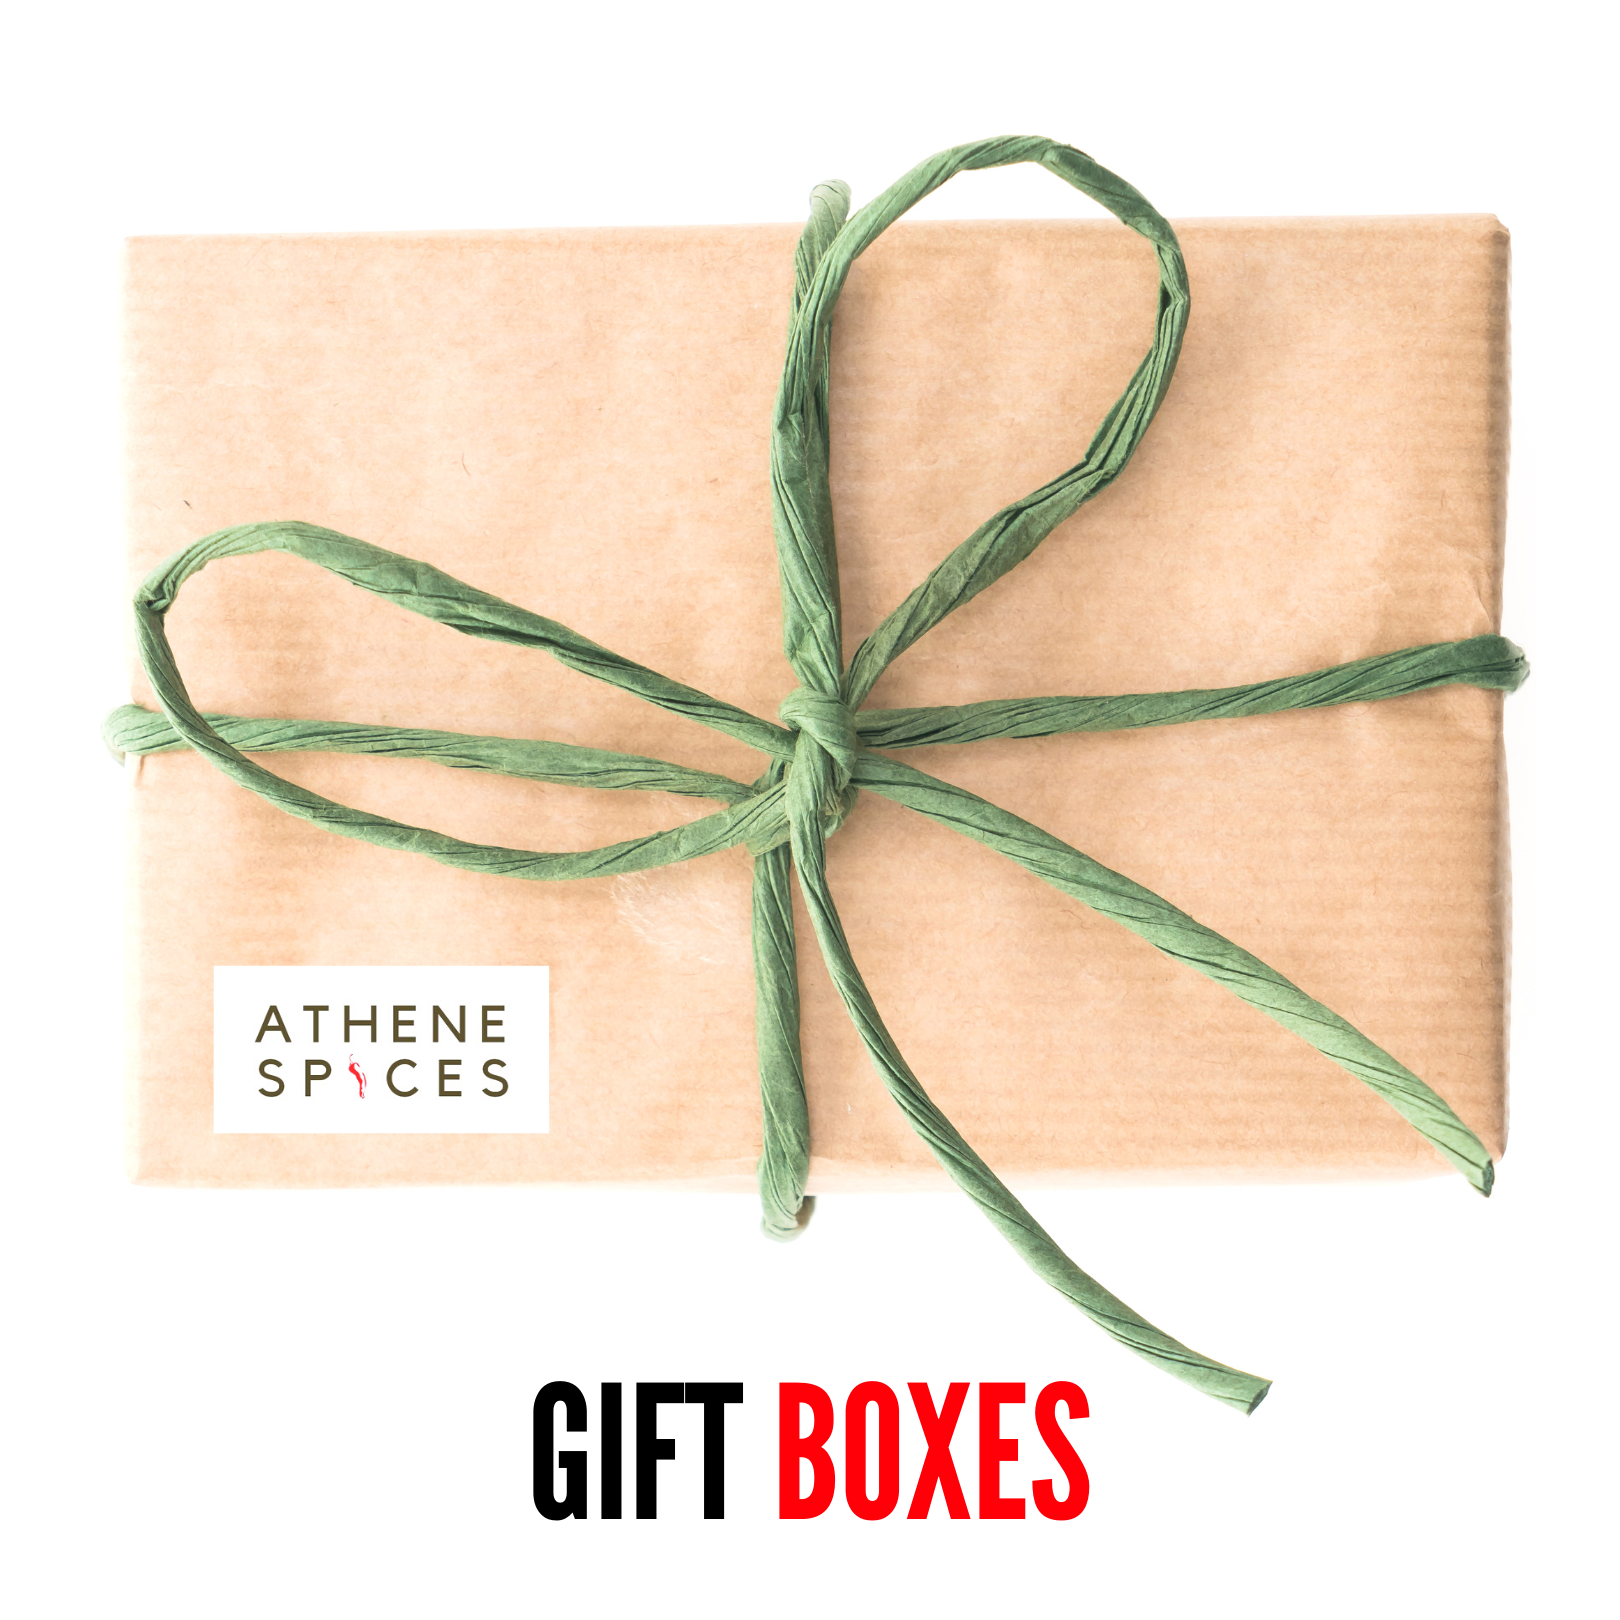 Athene Spices Gift Boxes